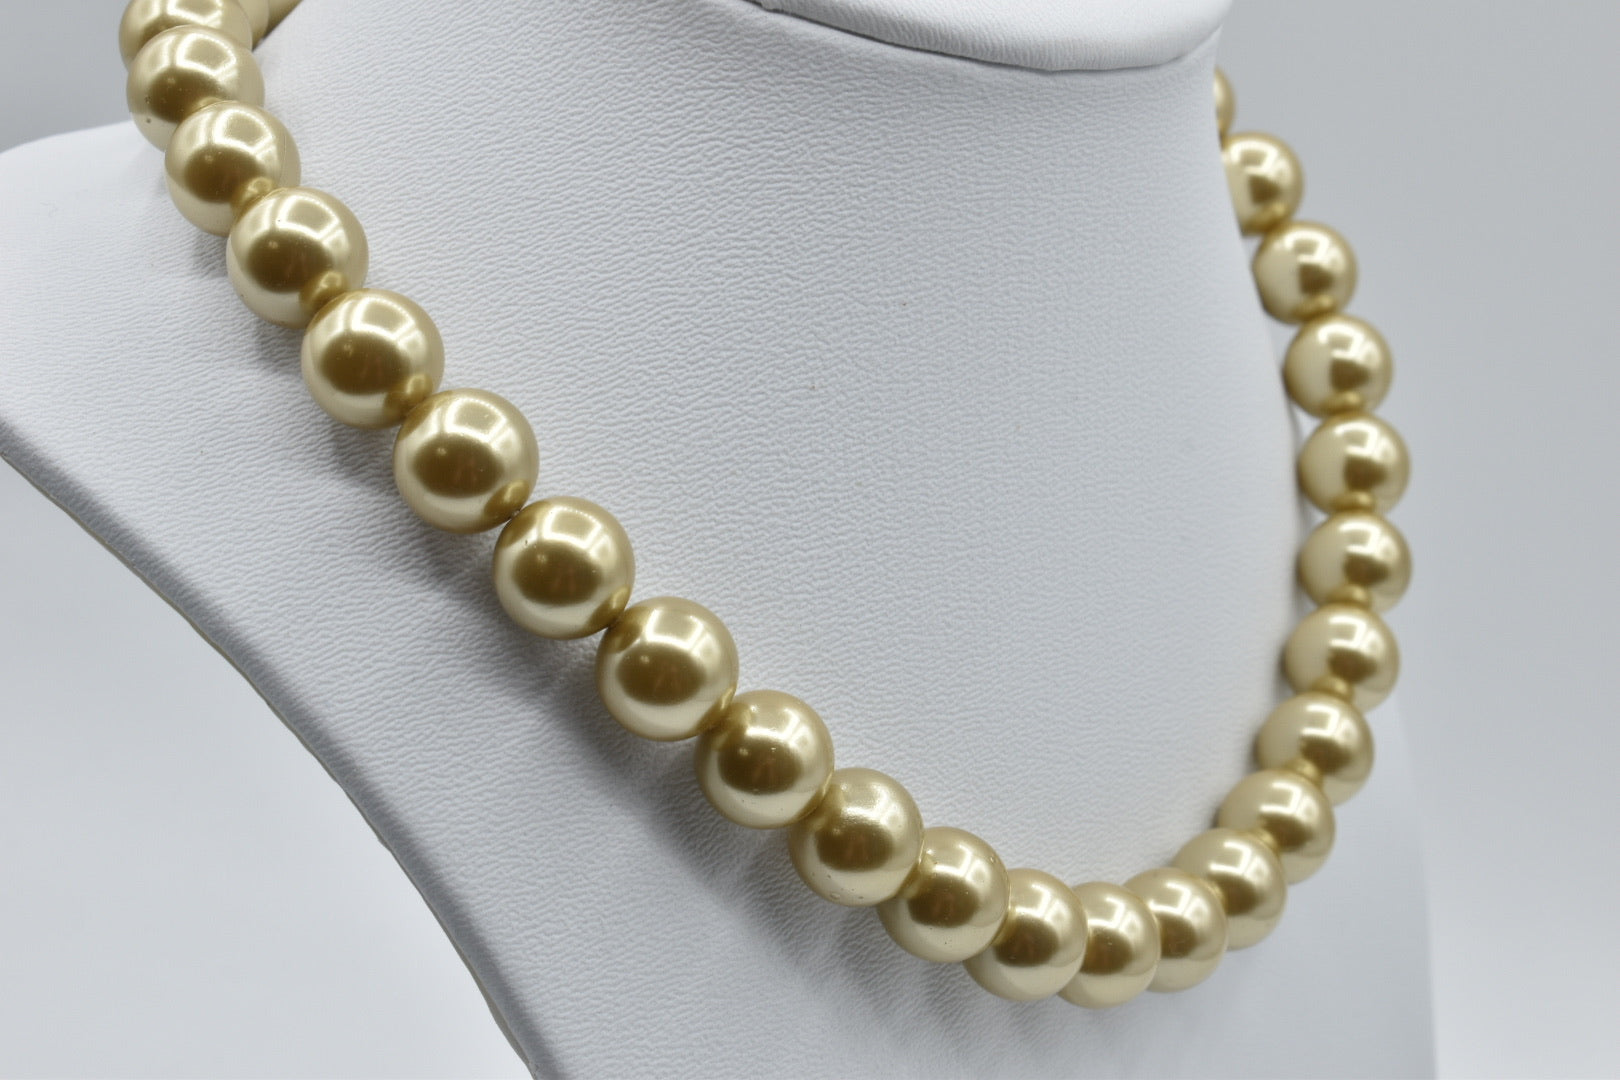 Golden South Sea Mother of Pearl/shell pearl necklace (12mm)